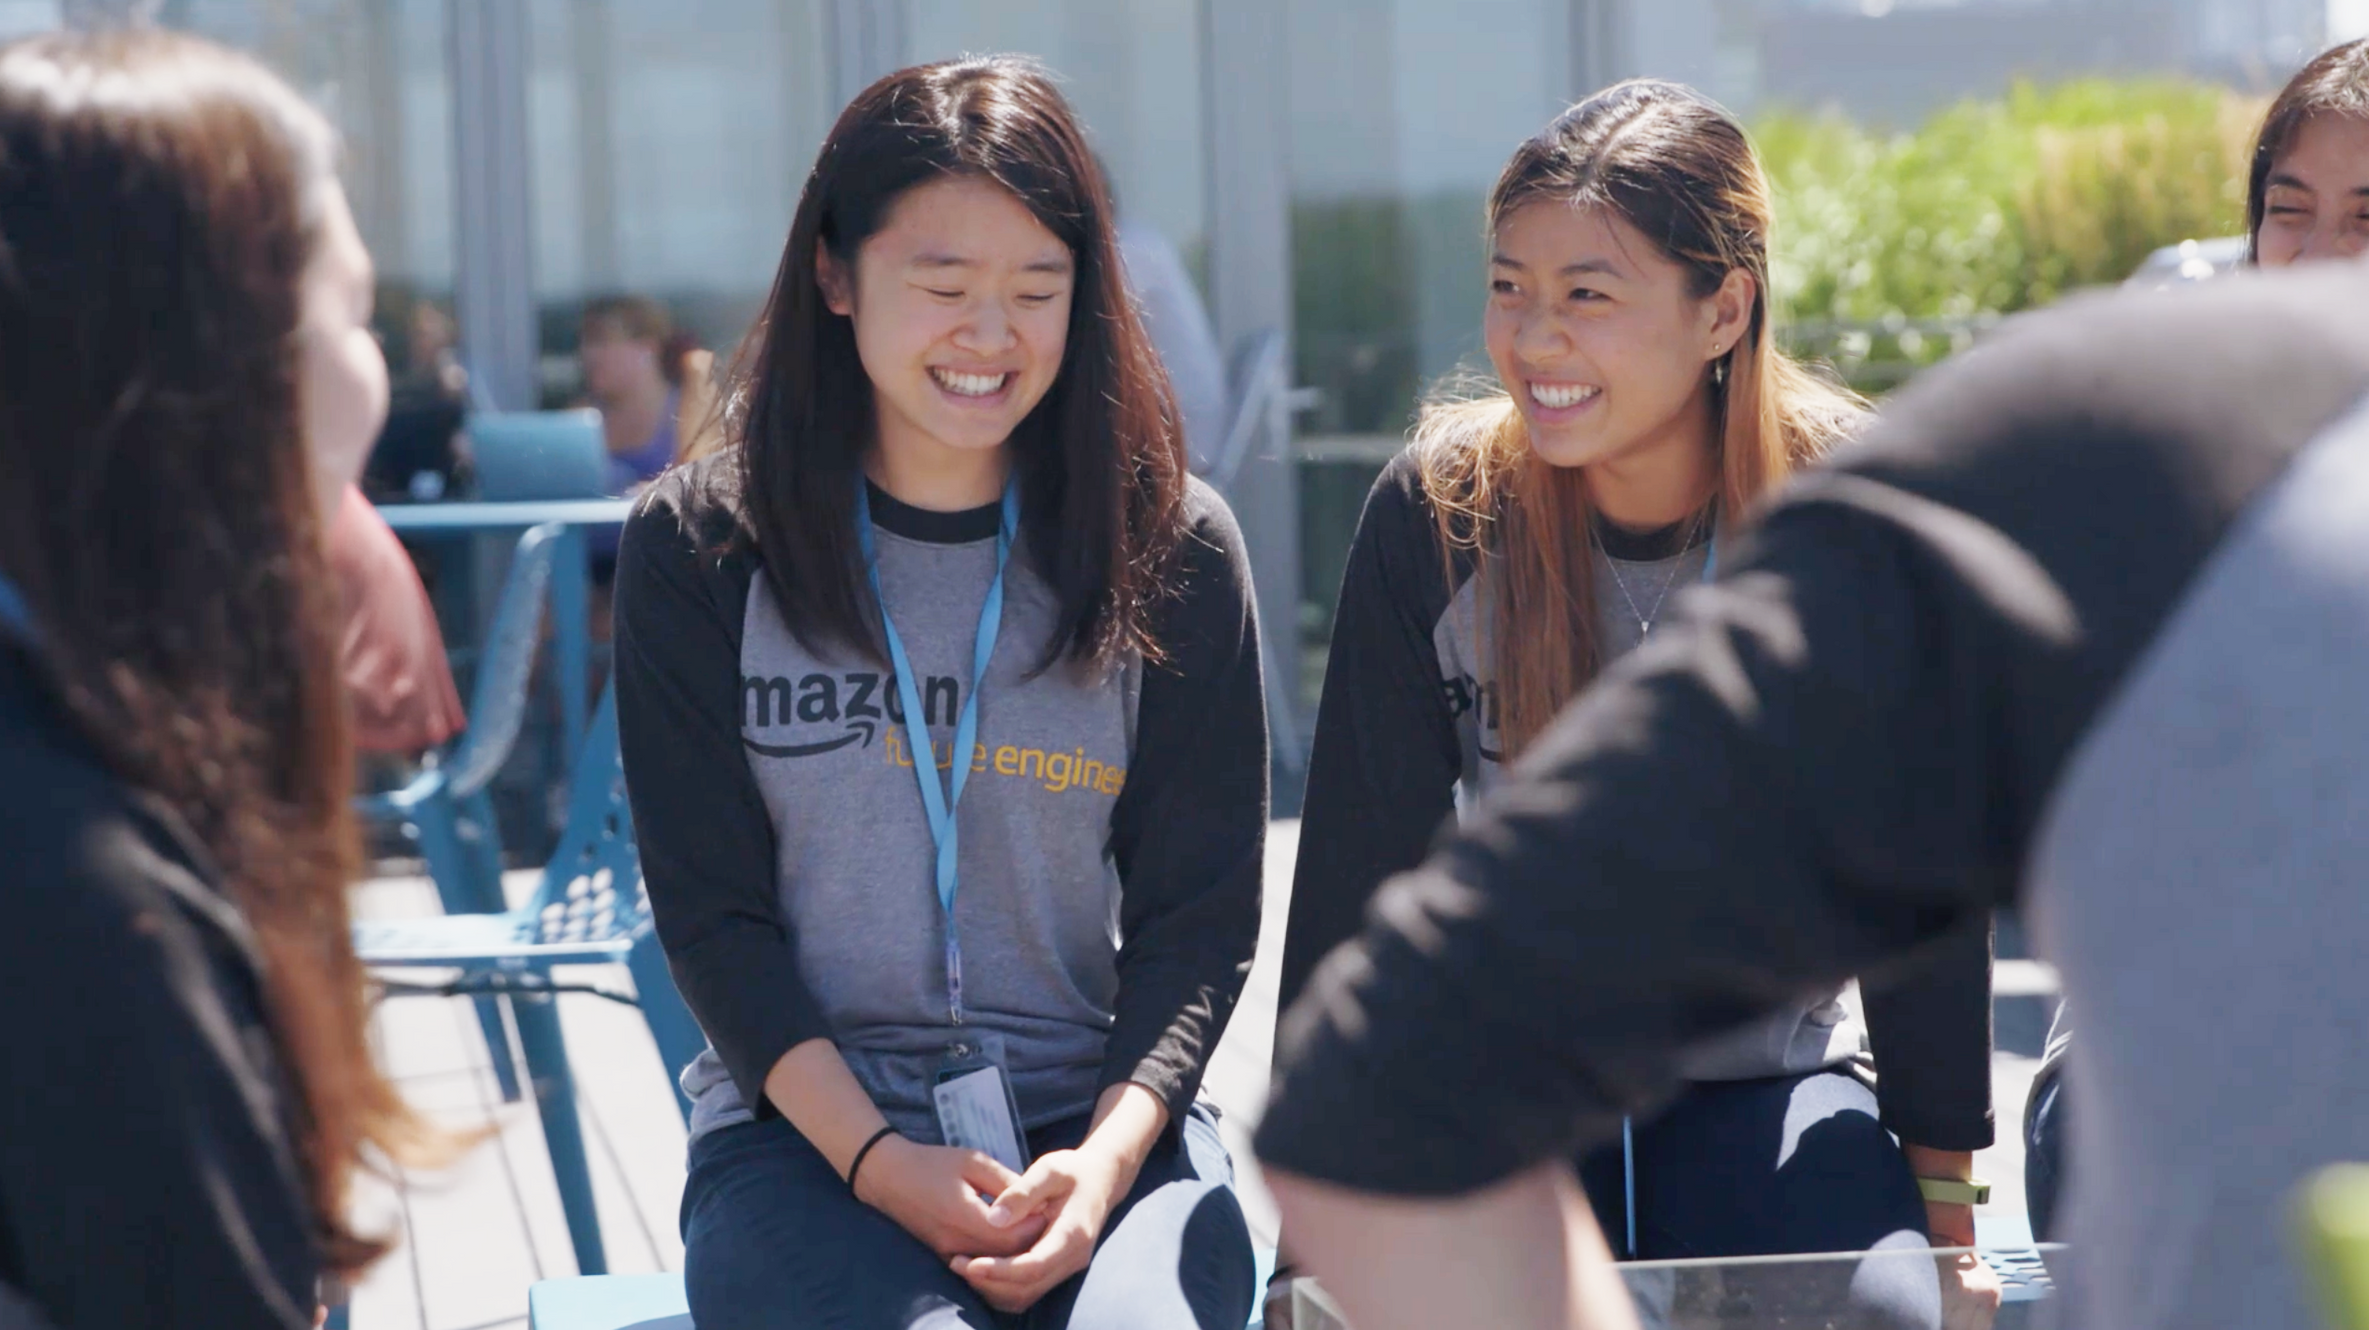 Amazon Internships | Amazon Future Engineer Pathway